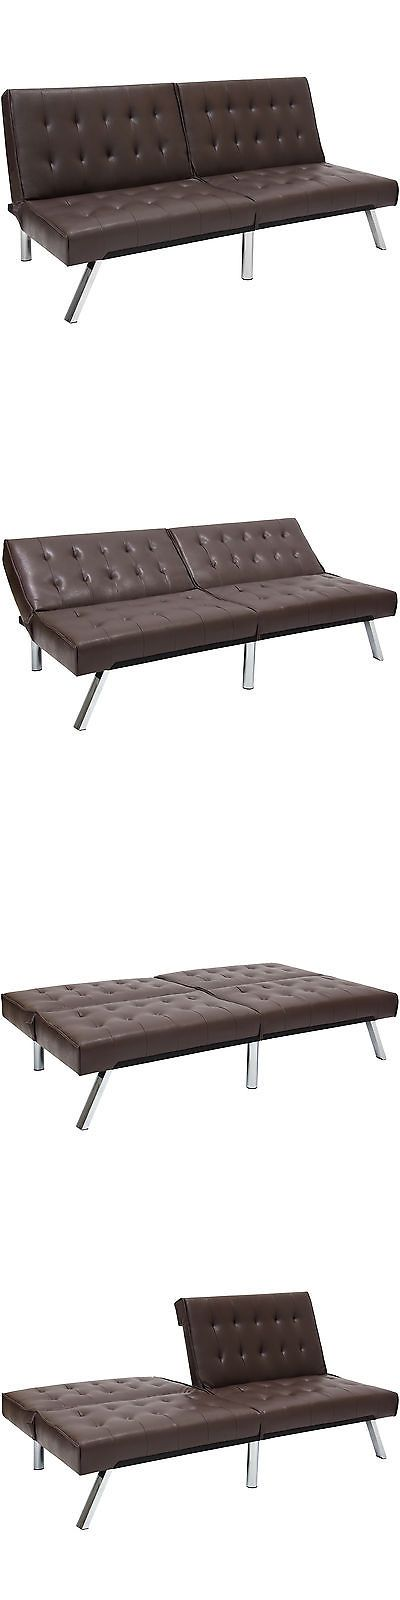 Futons Frames and Covers 131579: Modern Leather Futon Sofa Bed Fold Up Down Couch Recliner Lounger Sleeper Brown -> BUY IT NOW ONLY: $145.69 on eBay!